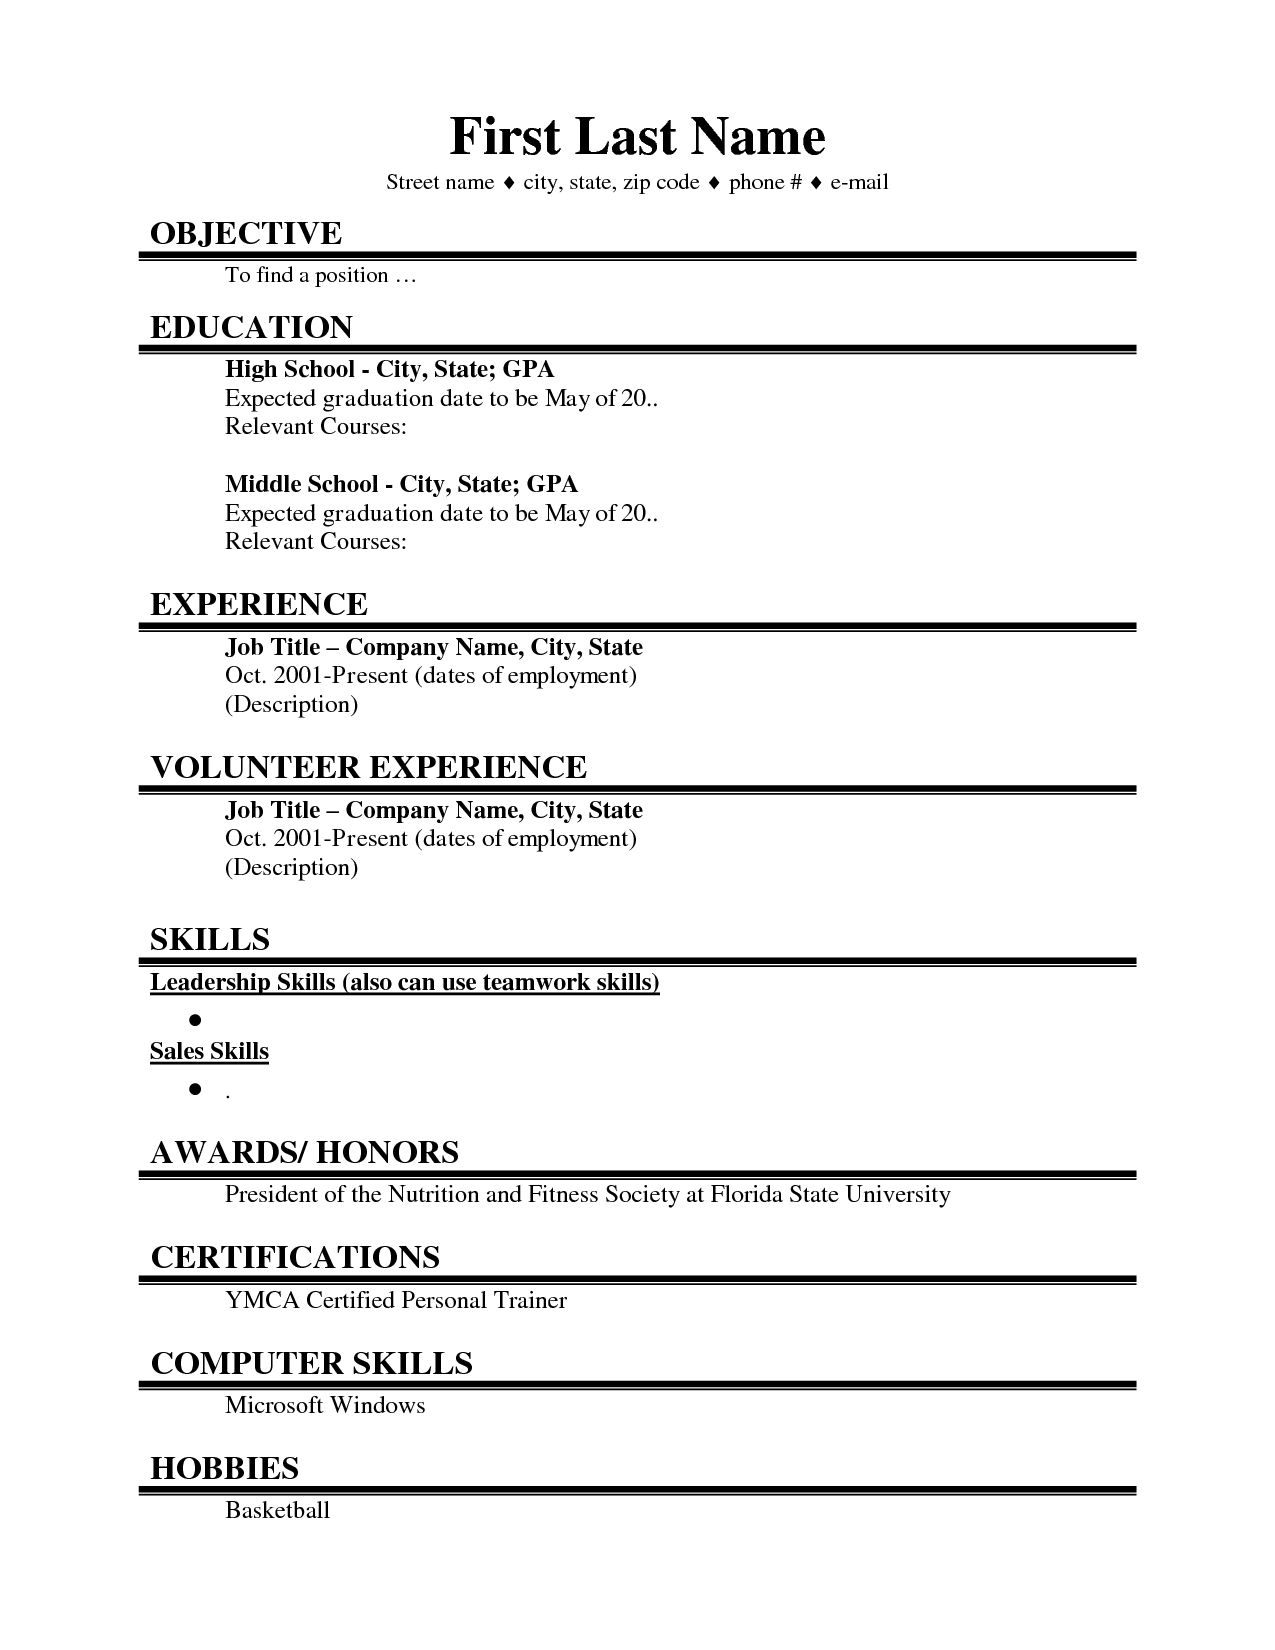 Superb Job Resume Examples For College Students Job Resume Examples For Students  268506f44